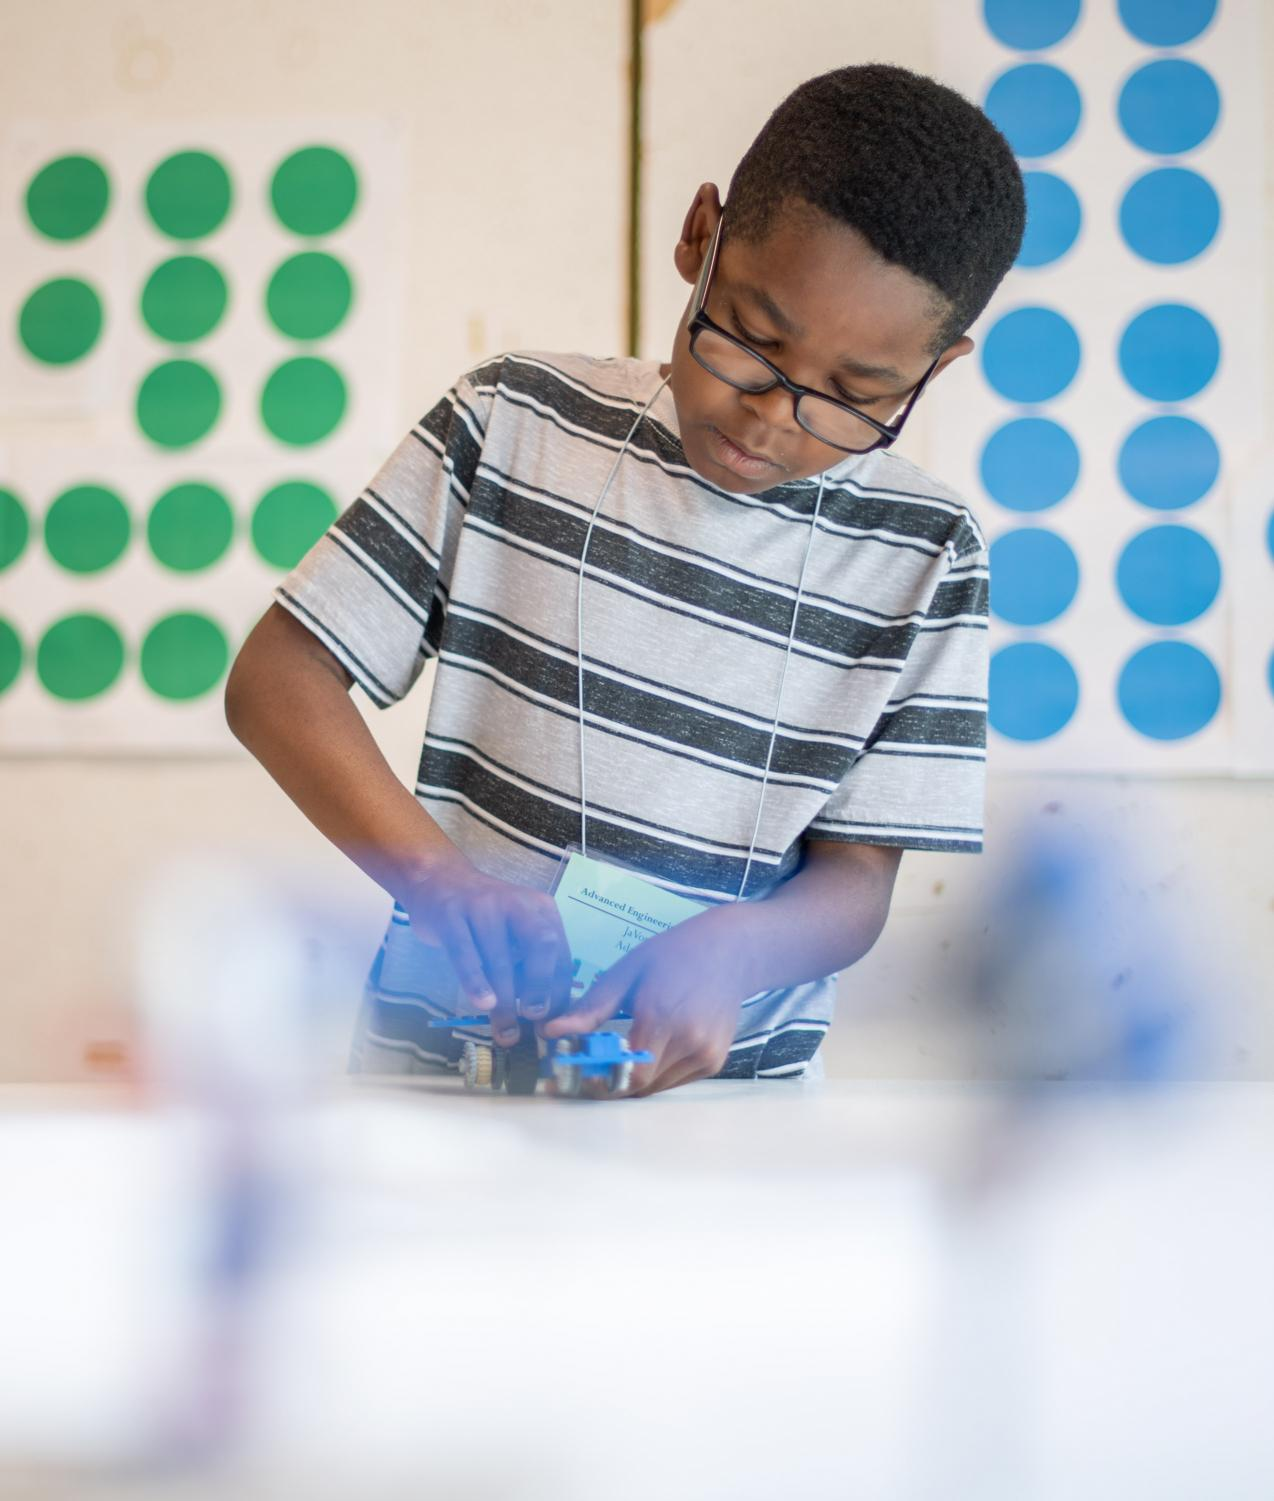 JaVon+Adams+works+on+his+LEGO+car+during+the+Advanced+Engineering+LEGO+Camp+on+Tuesday%2C+July+9%2C+2019+inside+Quigley+Hall.+The+camp+is+for+children+entering+3rd%2C+4th+and+5th+grade.+During+the+five+day+camp+children+will+complete+projects+that+explore+energy+supply%2C+transfer%2C+accumulation%2C+conversation+and+consumption.+Instructor+Nicholas+Lach+has+been+working+at+the+lego+camps+for+almost+a+decade.+He+enjoyed+instructing+the+camps+so+much+he+changed+his+career+to+teaching.